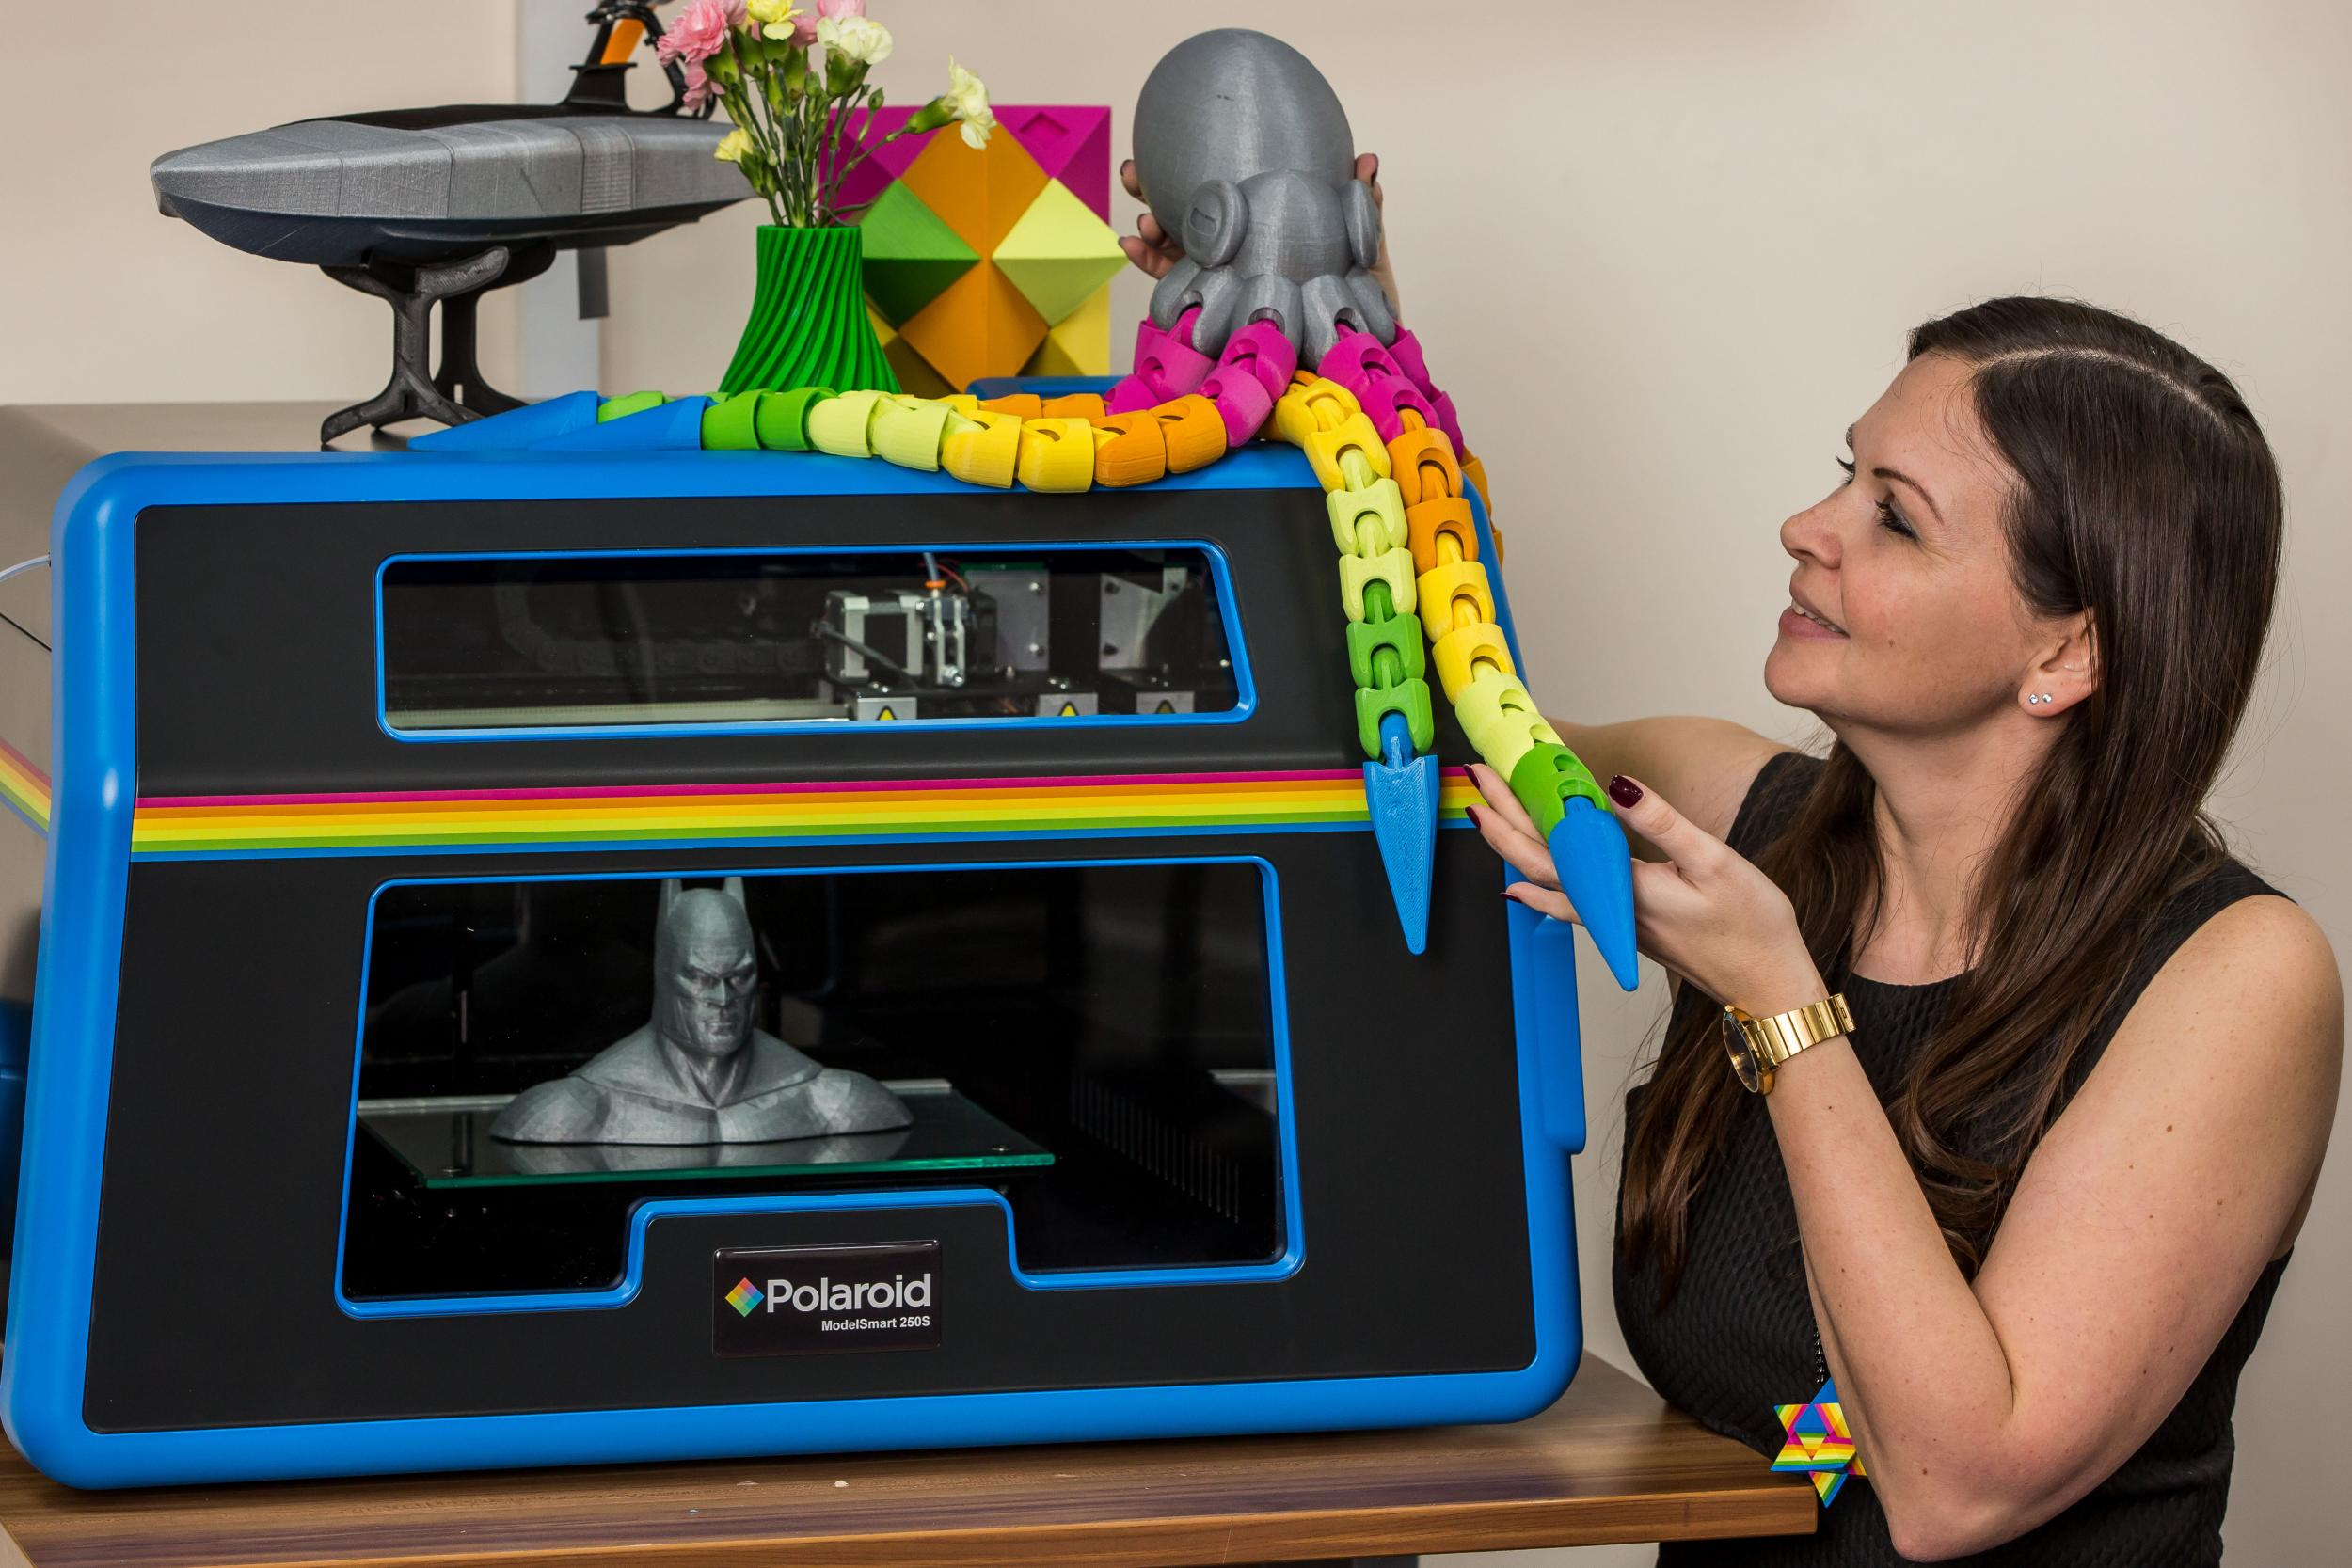 PCIAW - Professional Clothing Industry Association Worldwide| 3-D printers Industry News